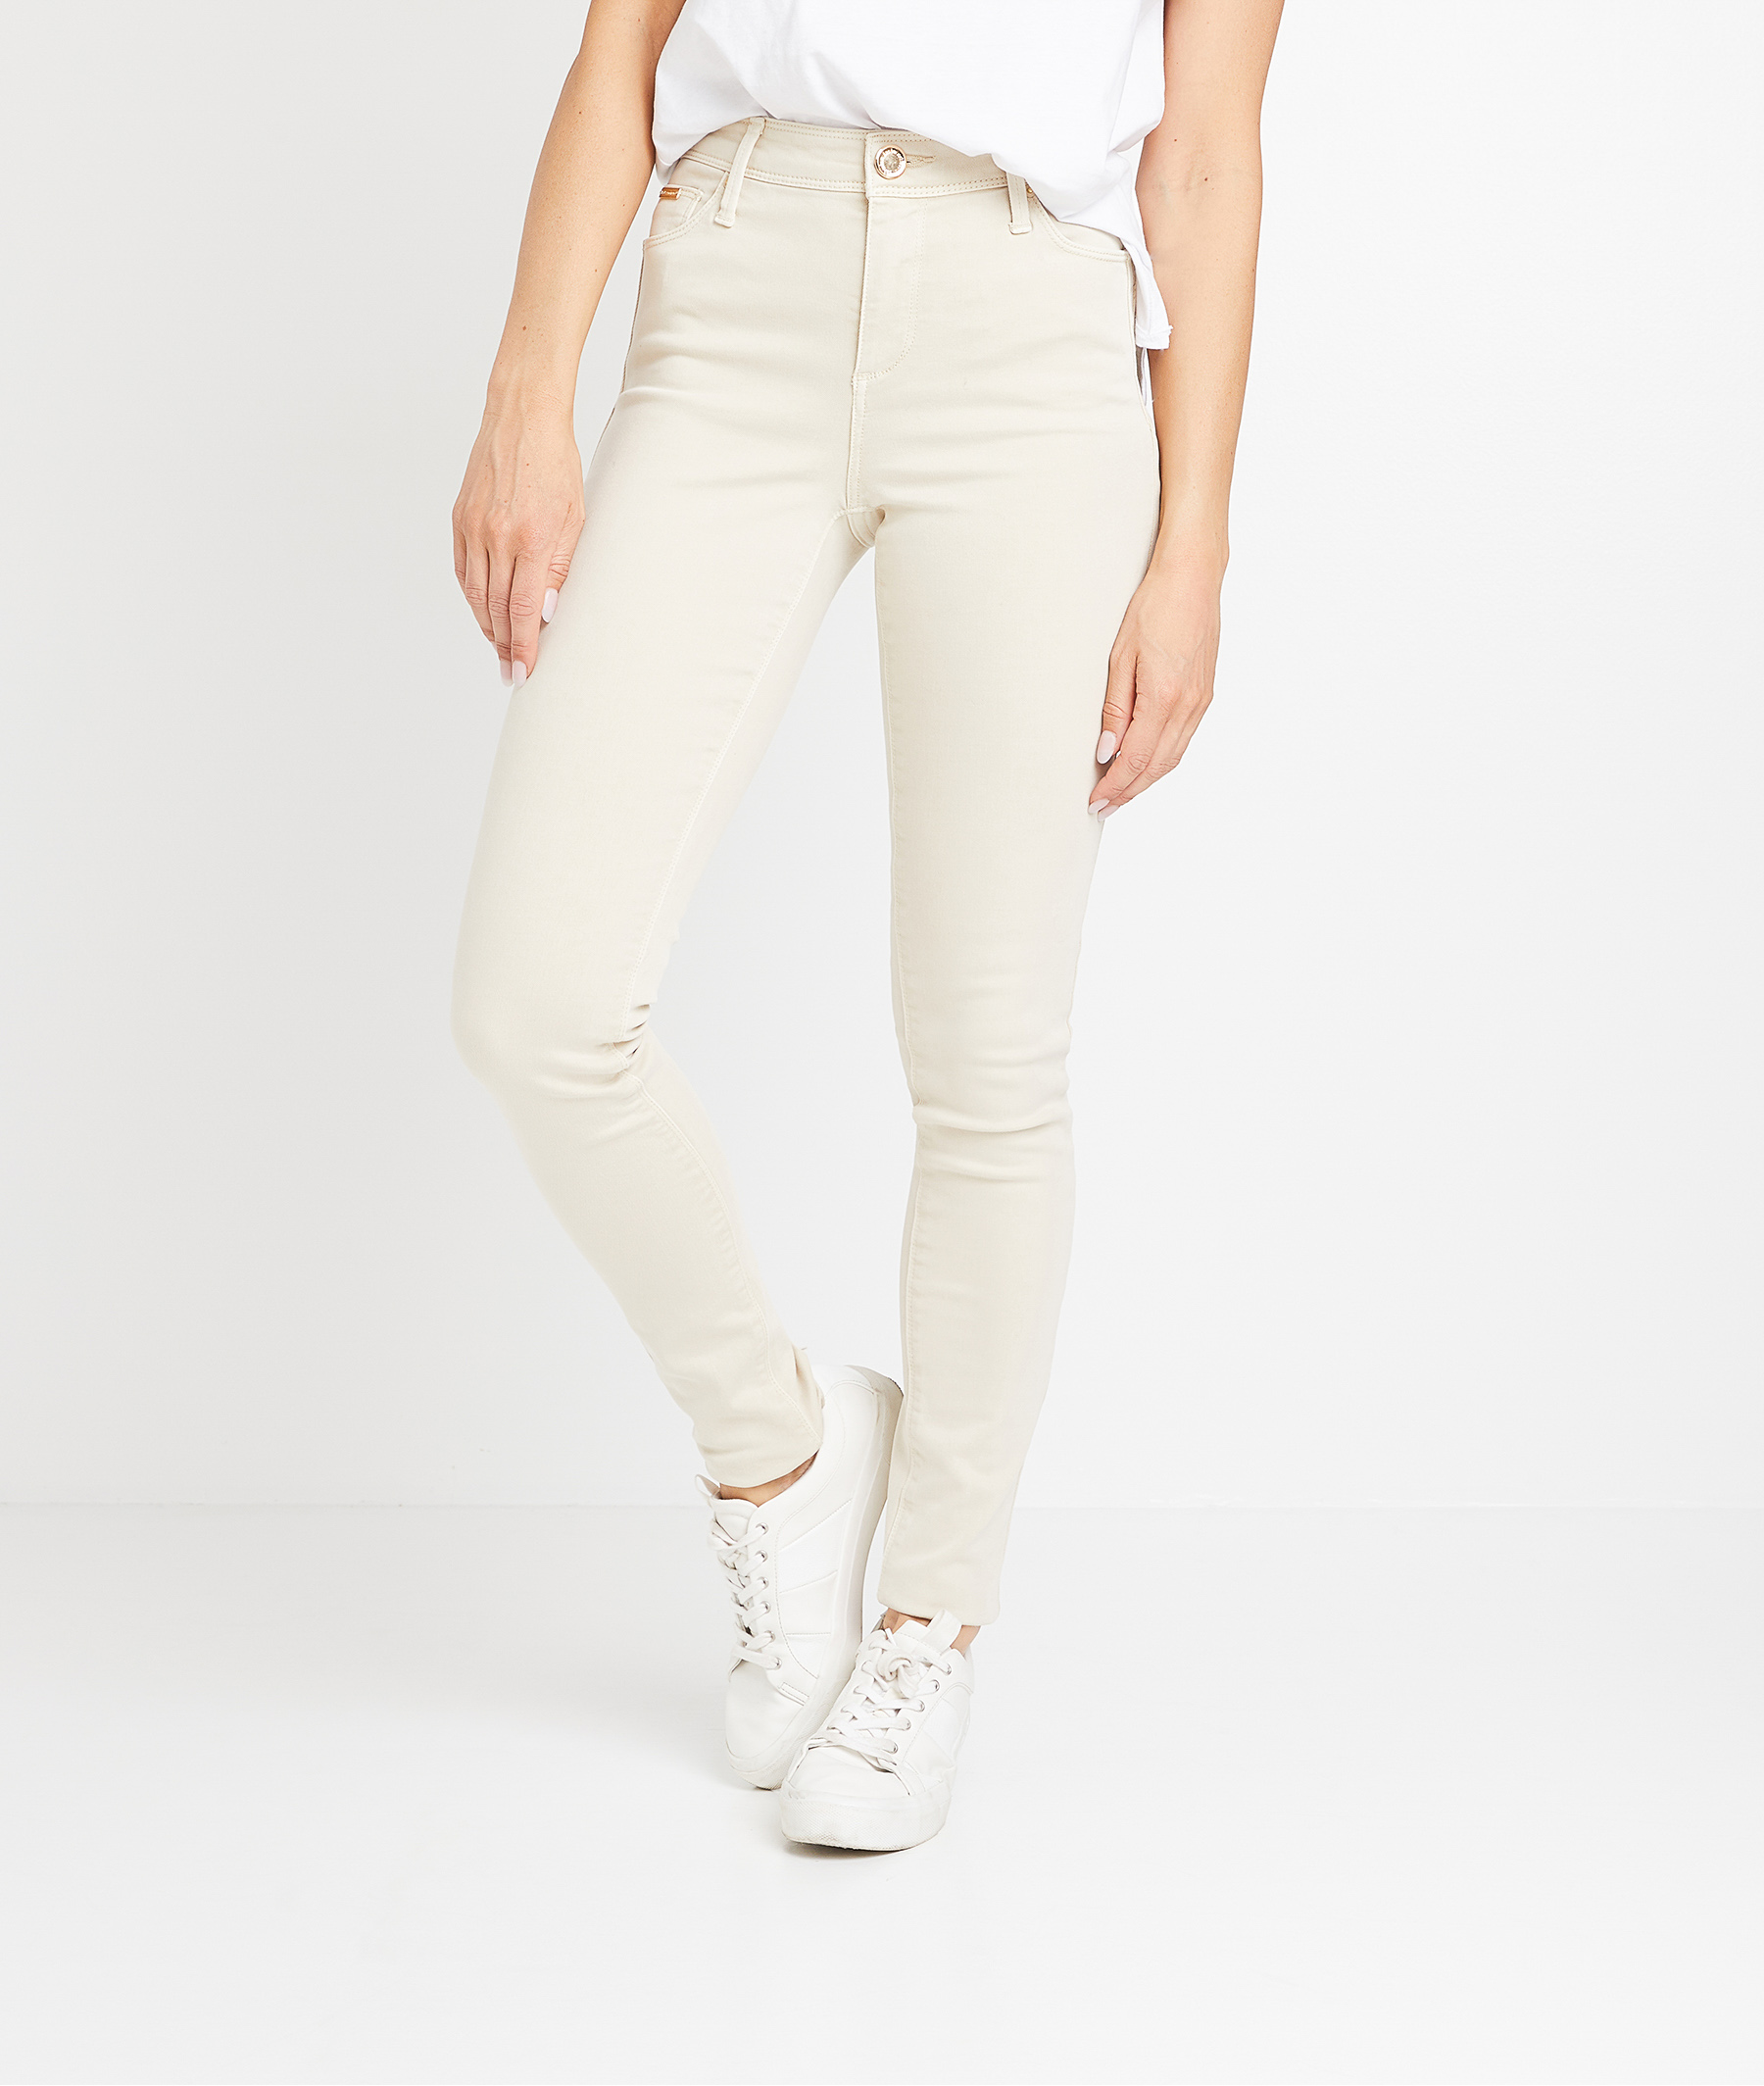 Pantalon flim push up coloré femme BEIGE CLAIR